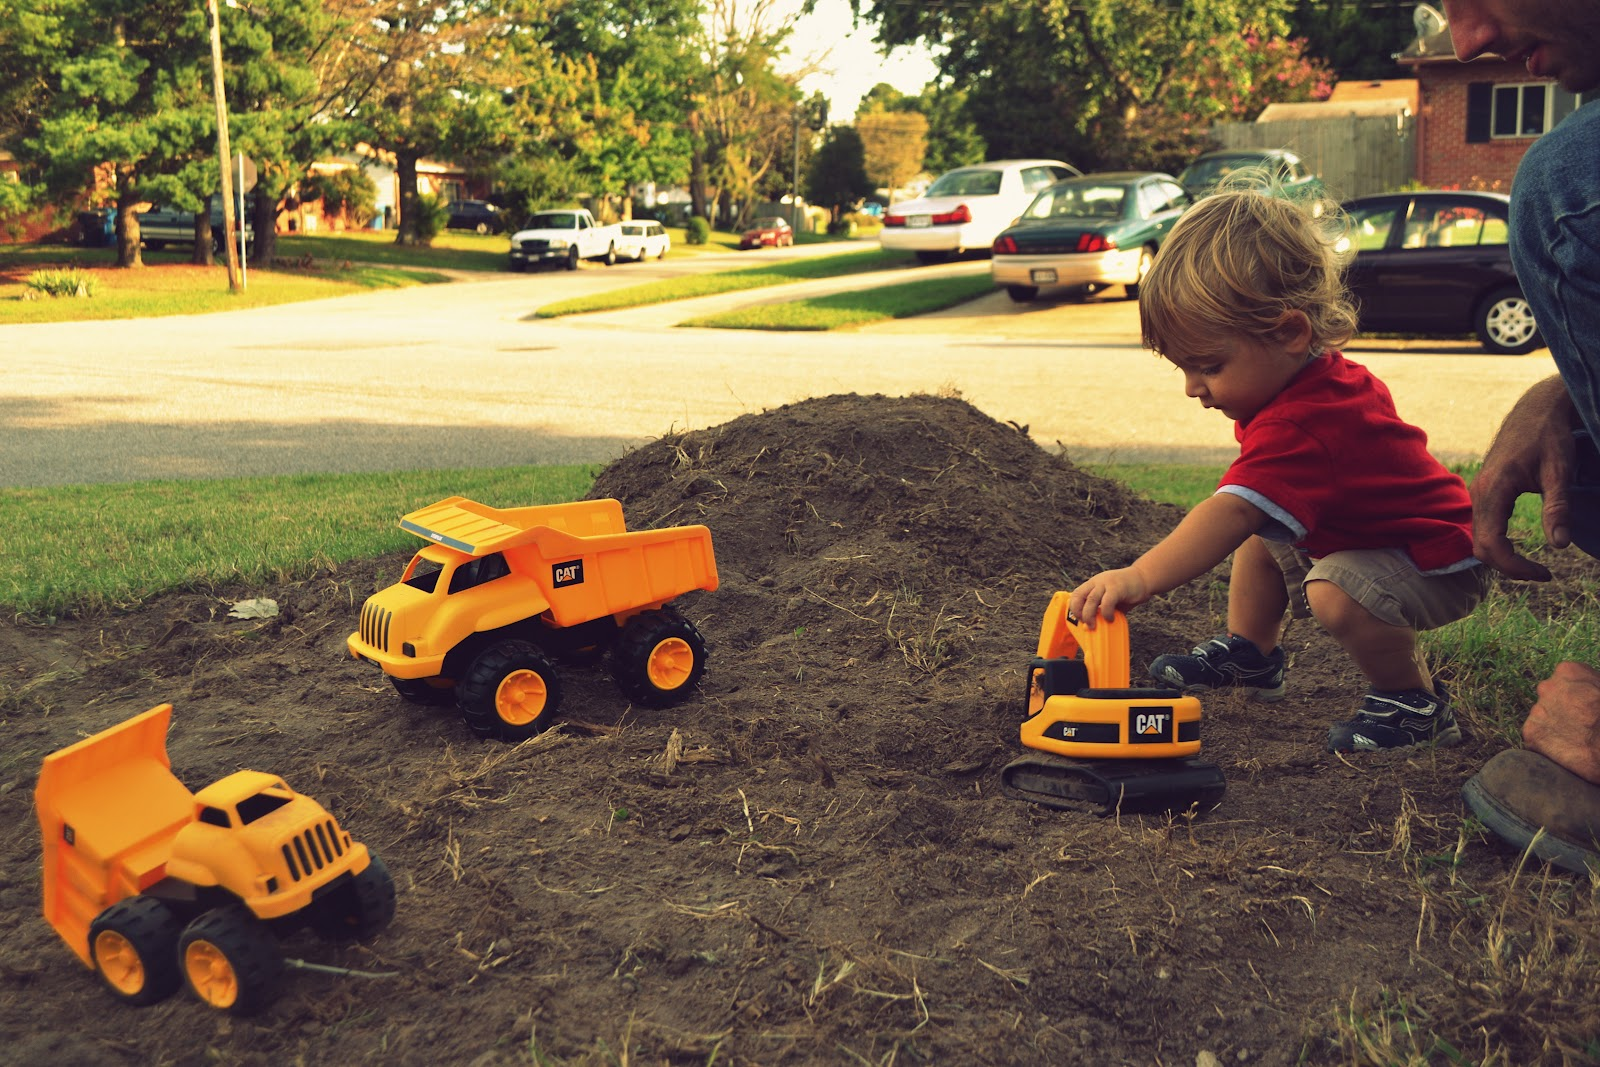 Boys are encouraged to play with cars, fostering an earlier development of driving skills.